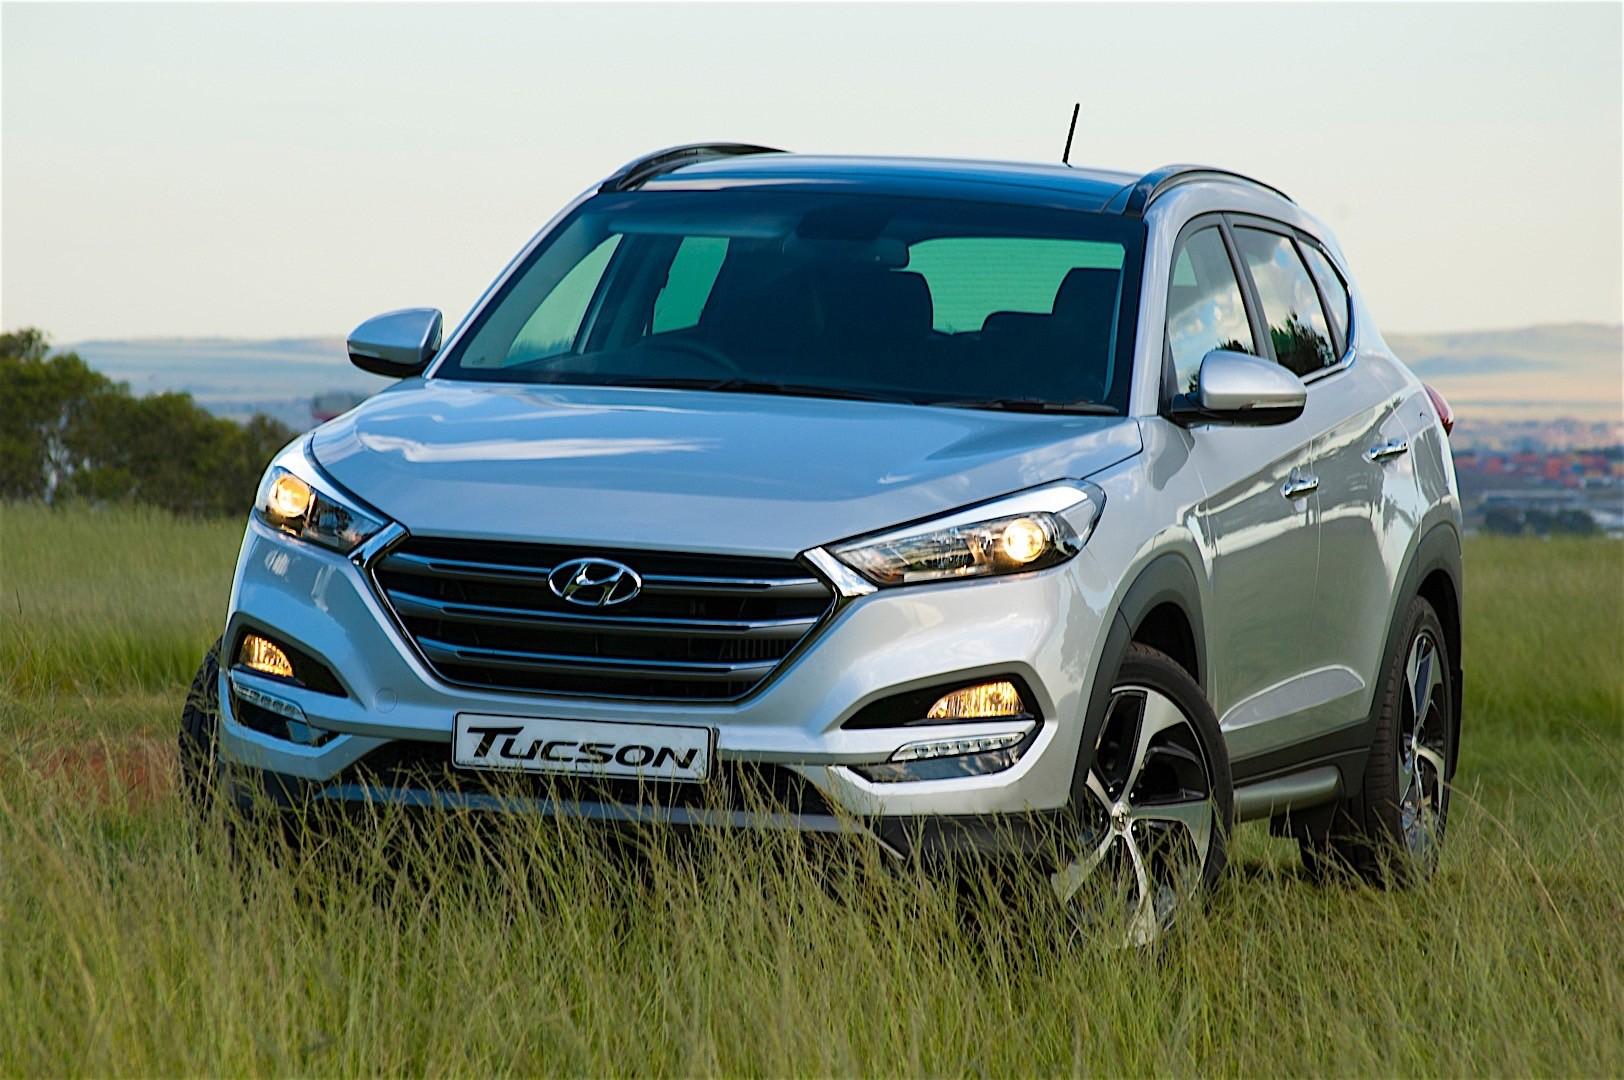 New Cars Coming To South Africa In 2018 >> HYUNDAI Tucson specs - 2016, 2017, 2018 - autoevolution